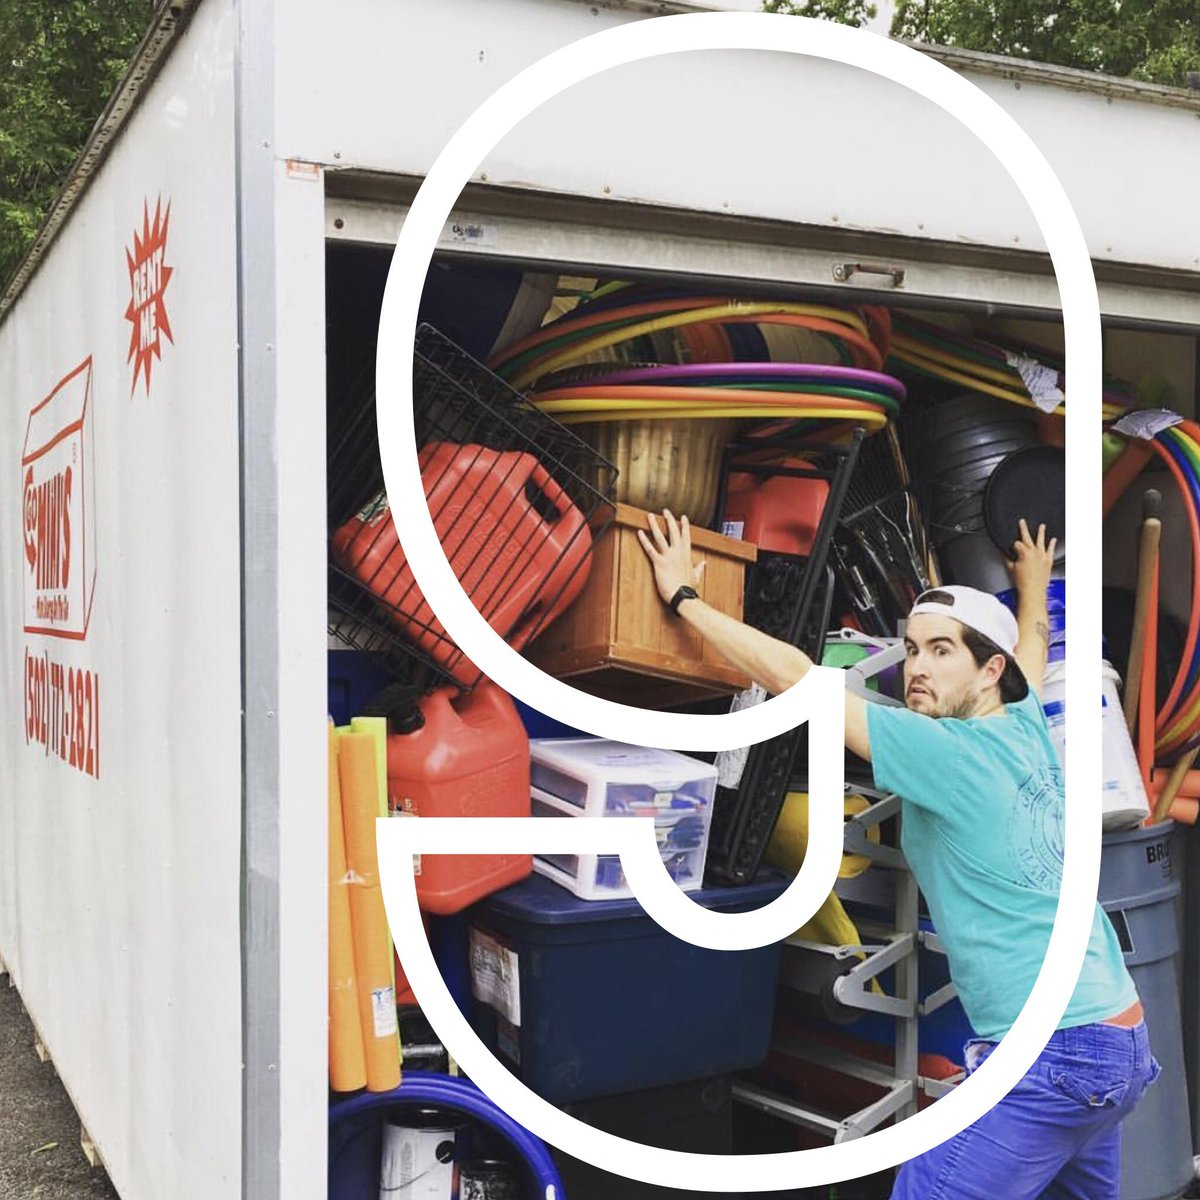 test Twitter Media - NINE DAYS UNTIL THE FIRST DAY OF FUGE! Leadership & specialty staff are unpacking storage, unloading trucks, and prepping to welcome staff! https://t.co/gtMb8F0juT